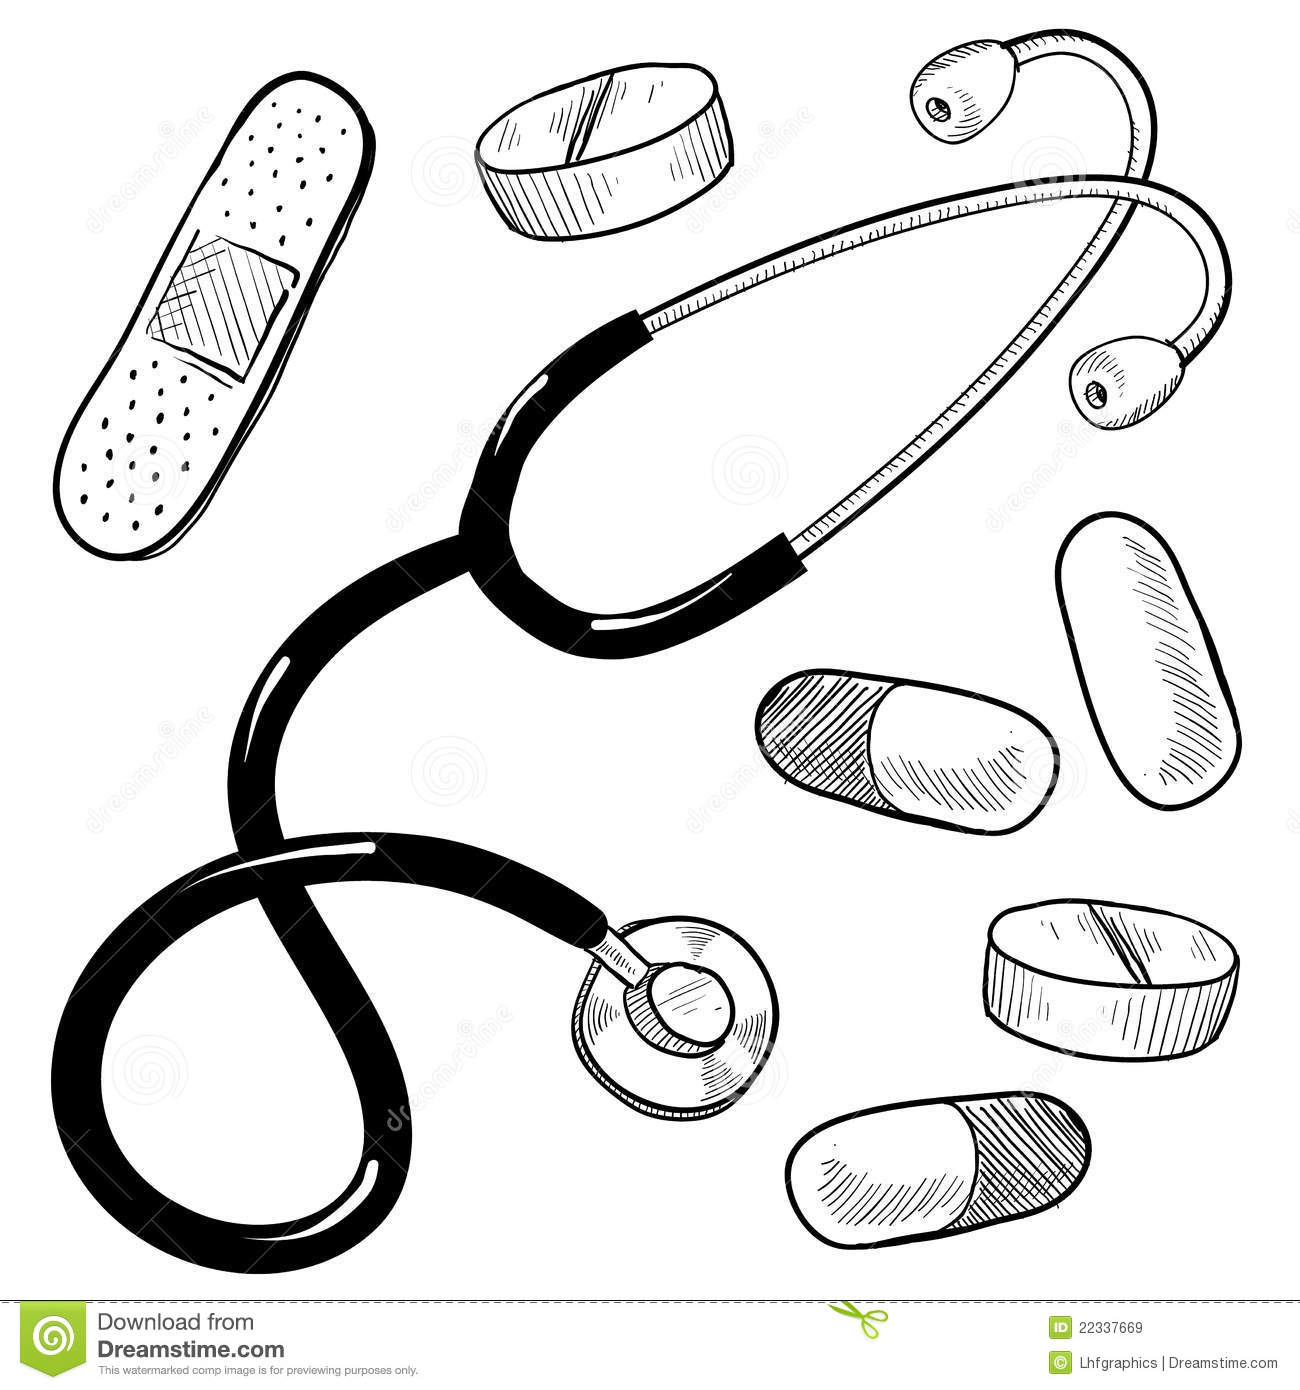 Doctors Equipment Sketch Royalty Free Stock Images